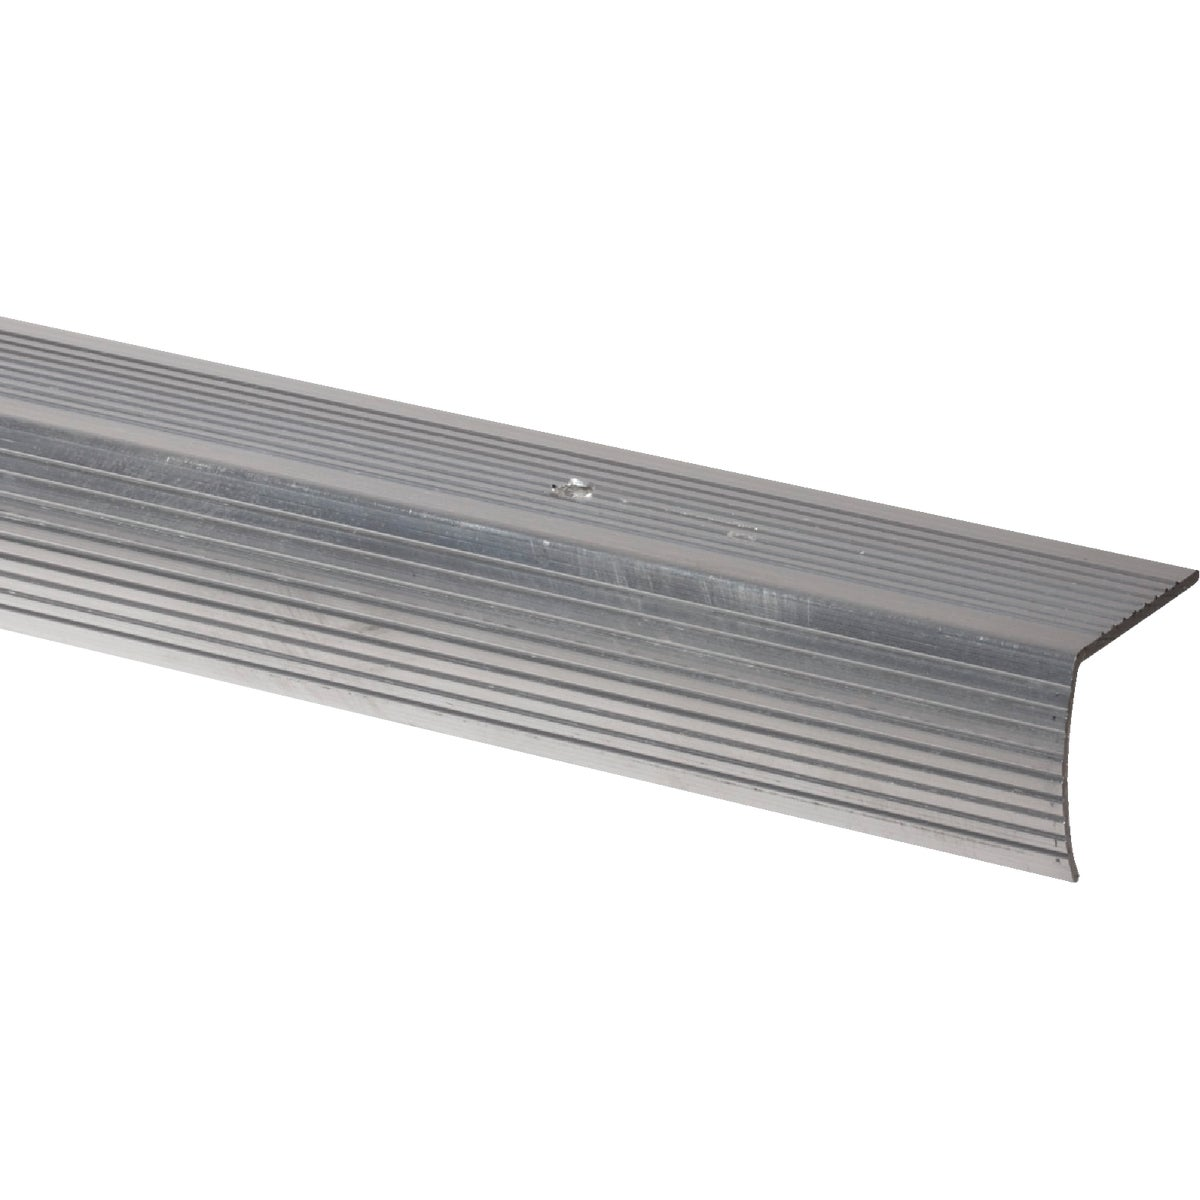 "1-1/8""X3' SLVR EDGING - H4128FS3DI by Thermwell Prods Co"